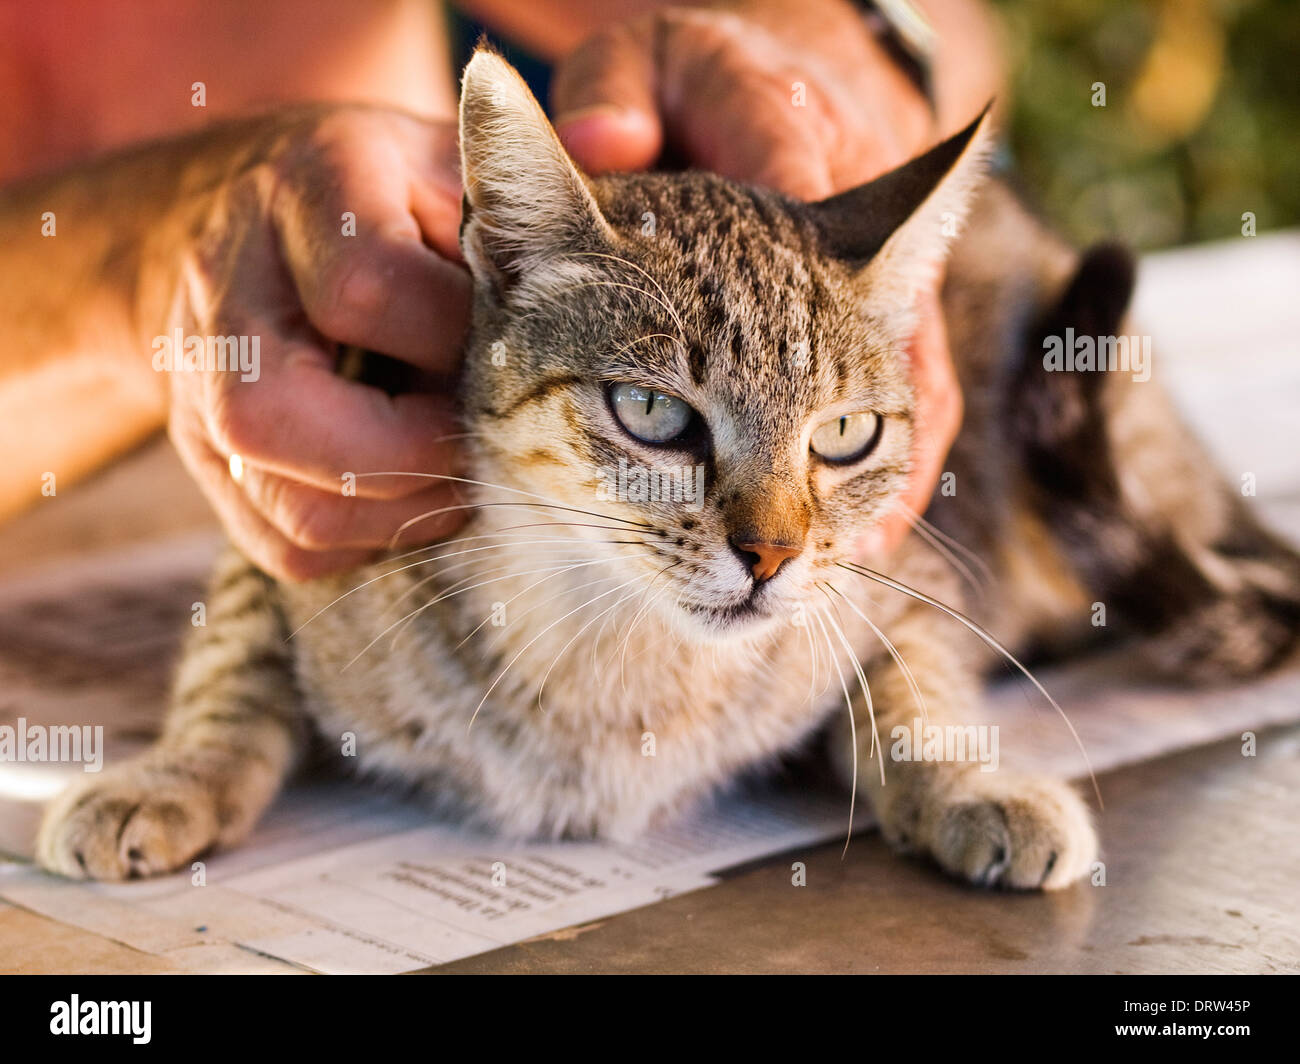 Cat is touched by a person. The cat is crouched and submissive attitude Stock Photo